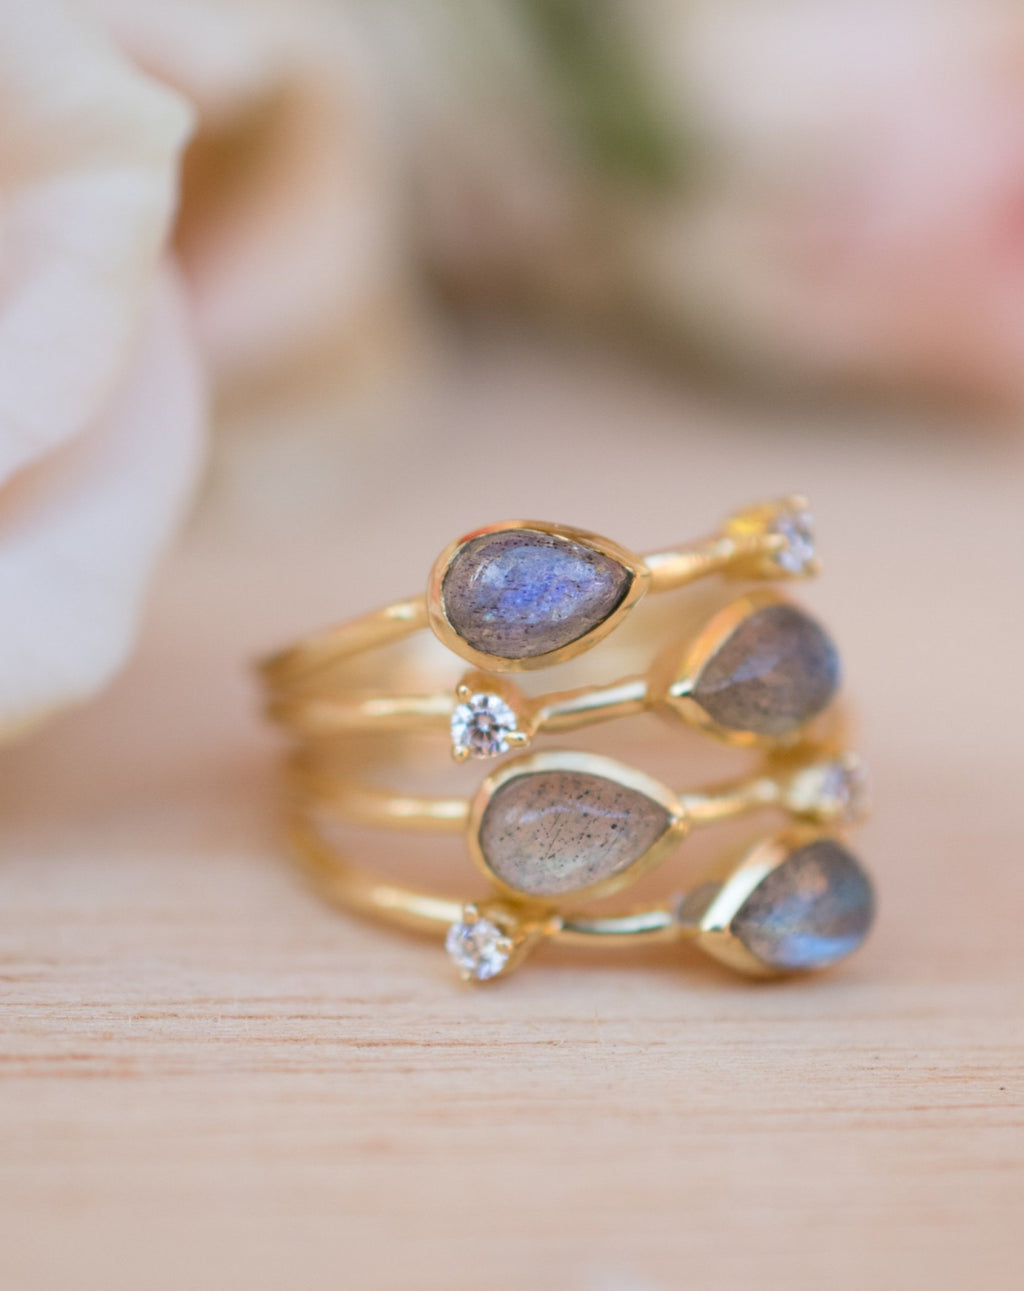 Rainbow Labradorite  & Zirconia Ring * Gold Ring * Gemstone * Gold Plated * Statement *Bridal *Wedding * Natural *Handmade * BJR105